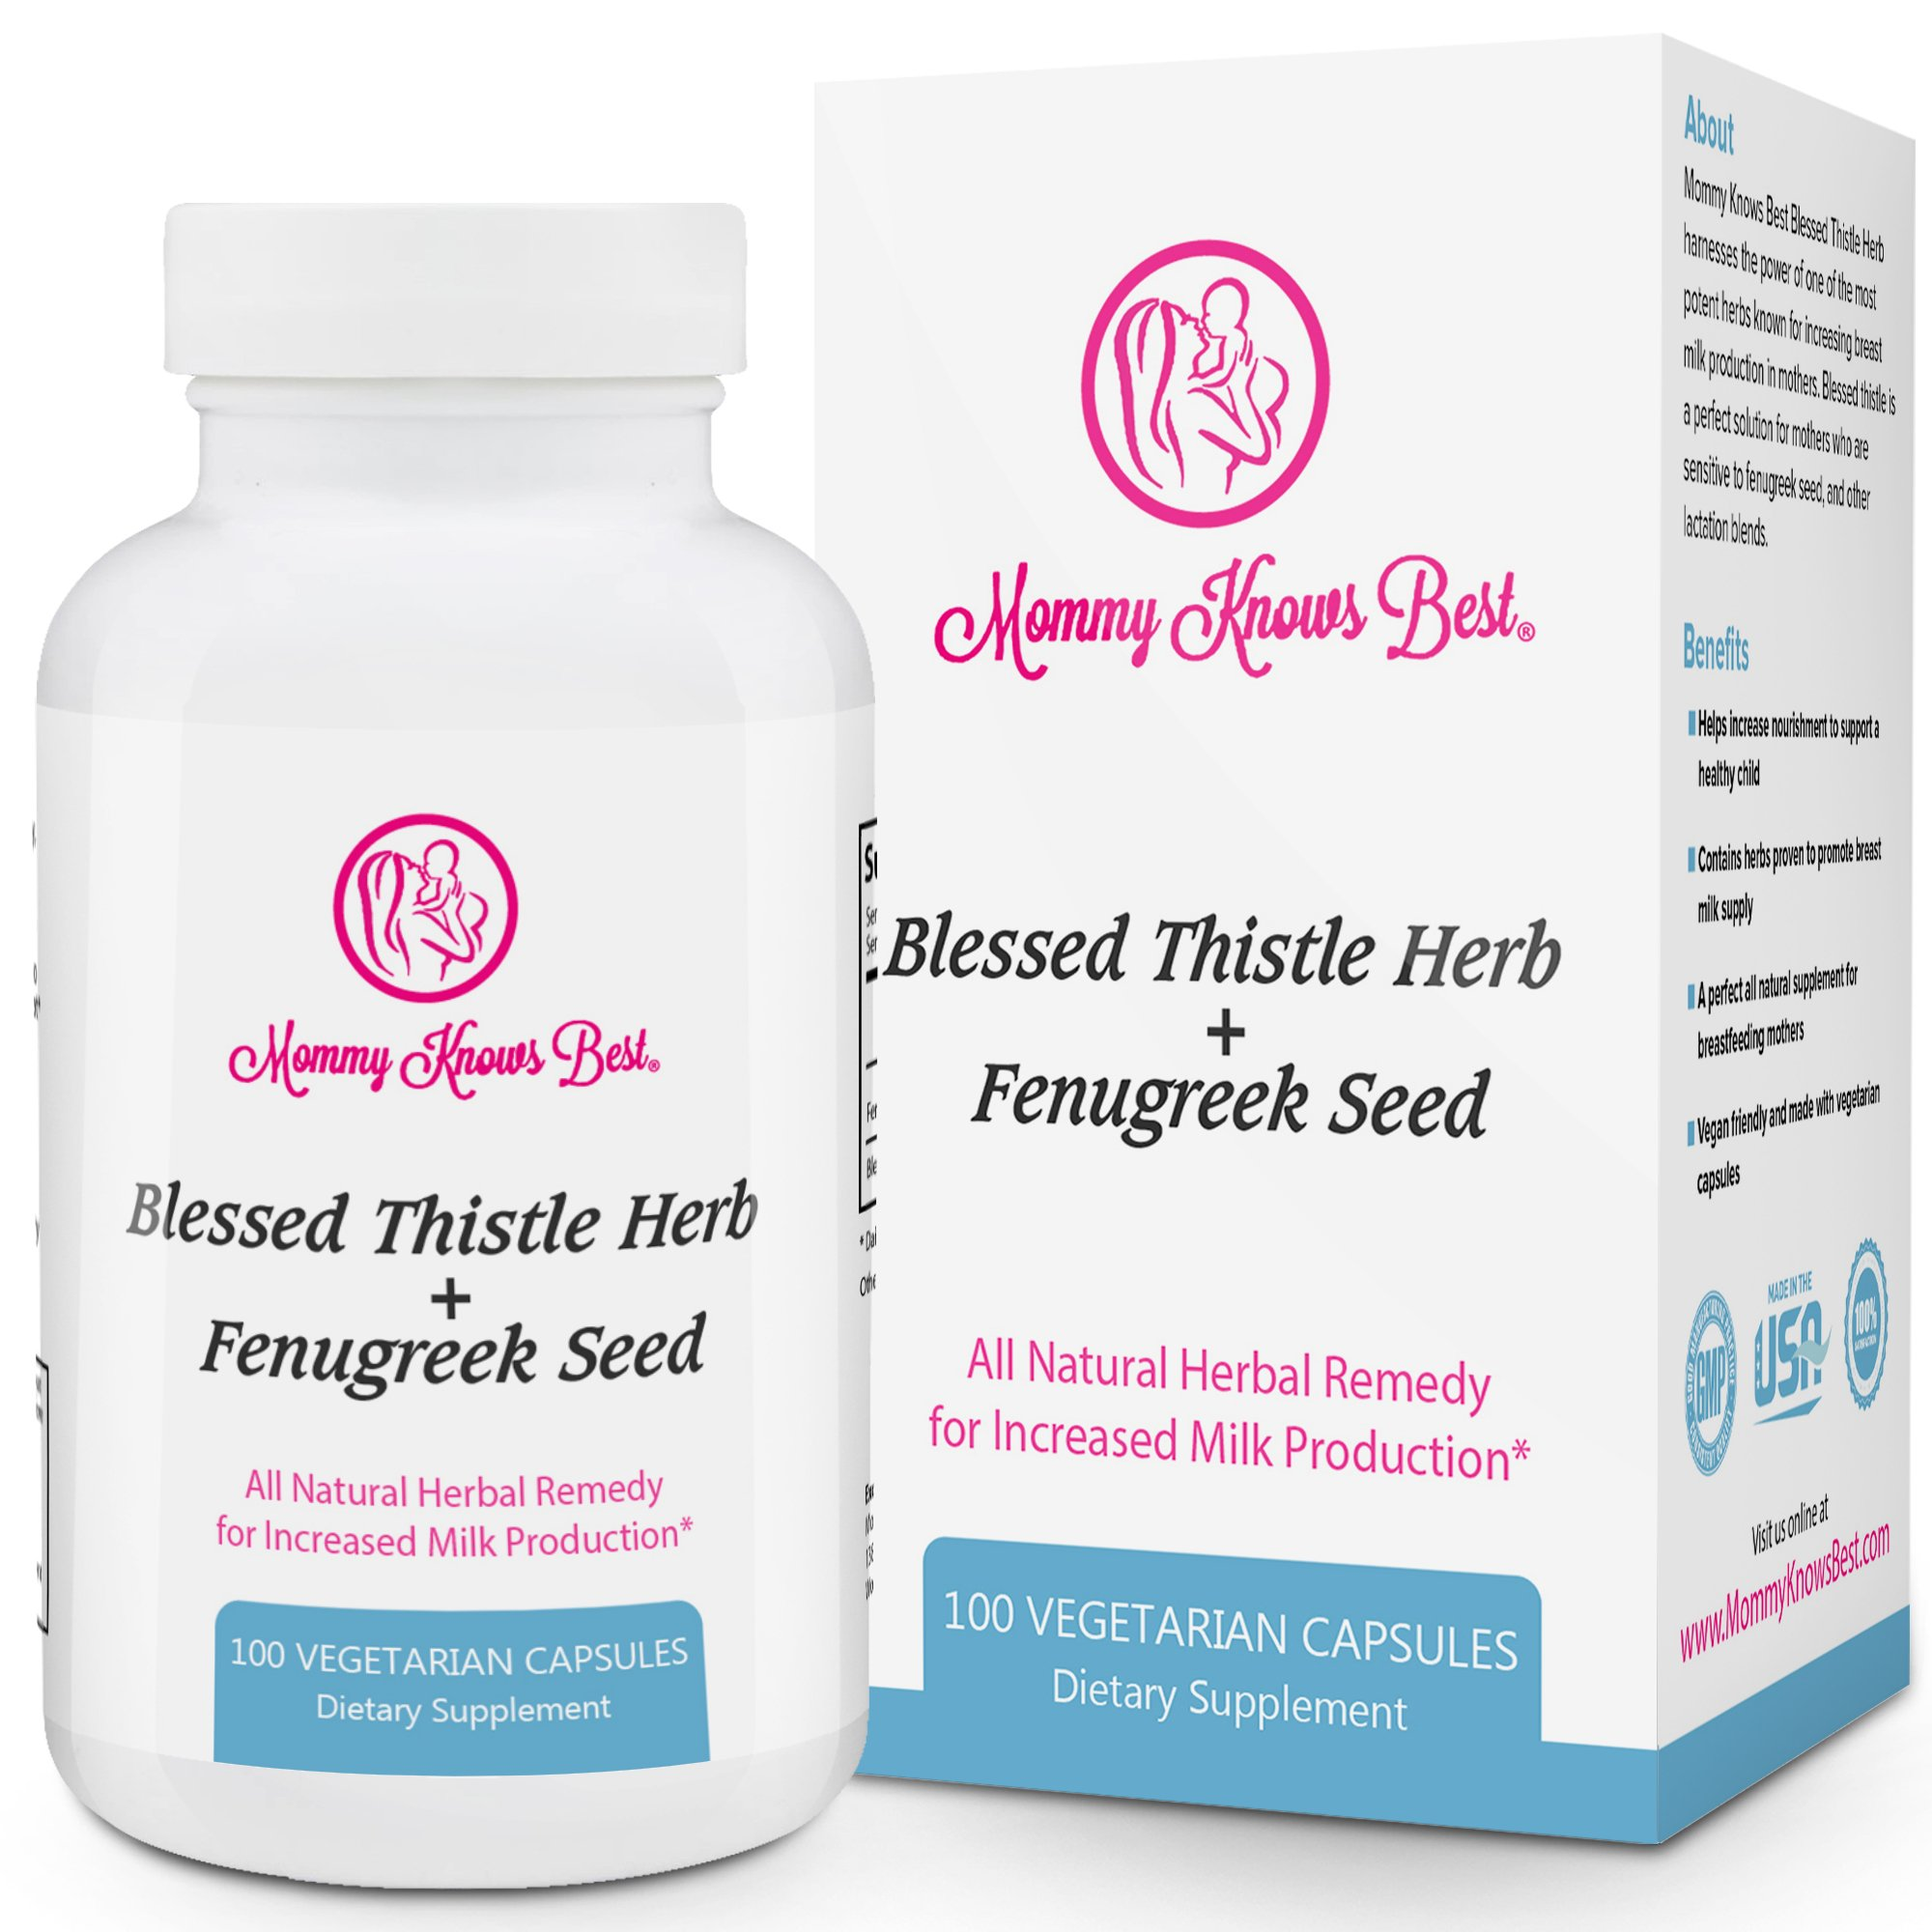 Lactation Supplement For Breastfeeding Mothers To Herbs Of Gold Support 60 Tablets Fenugreek And Blessed Thistle Aid 100 Vegetarian Capsules